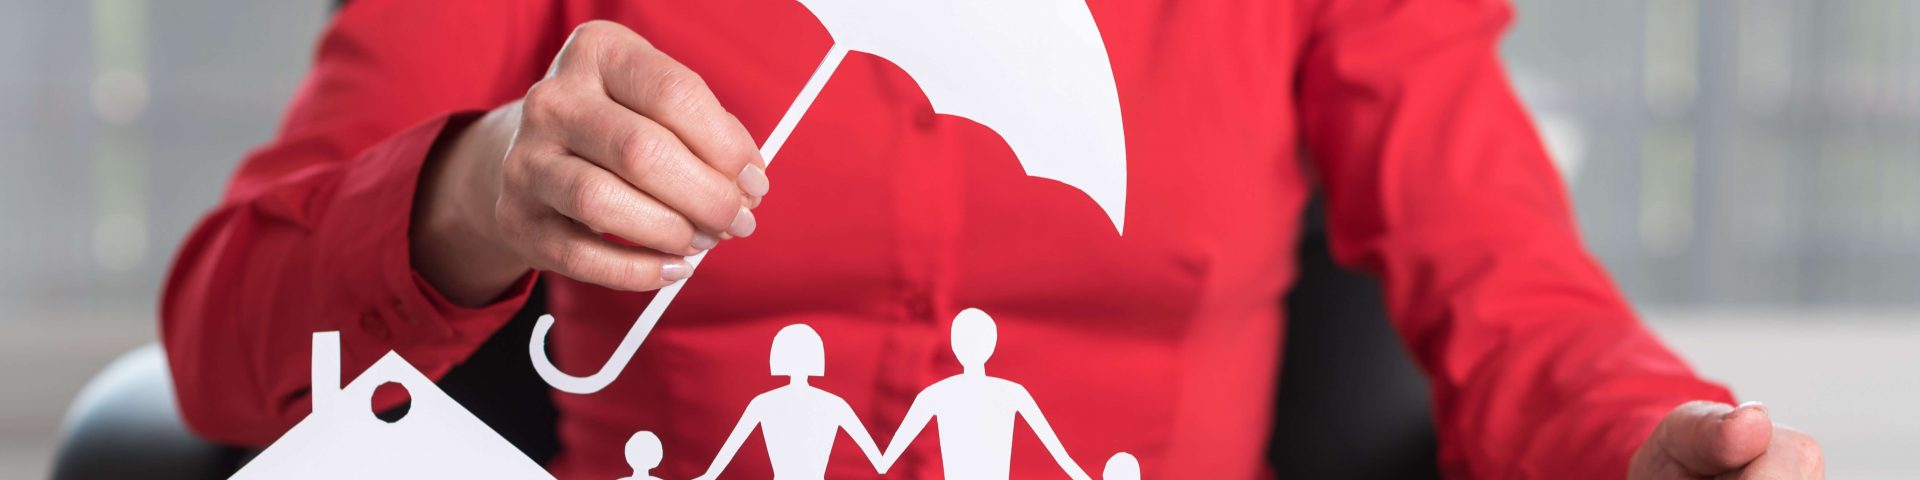 Become a life insurance agent